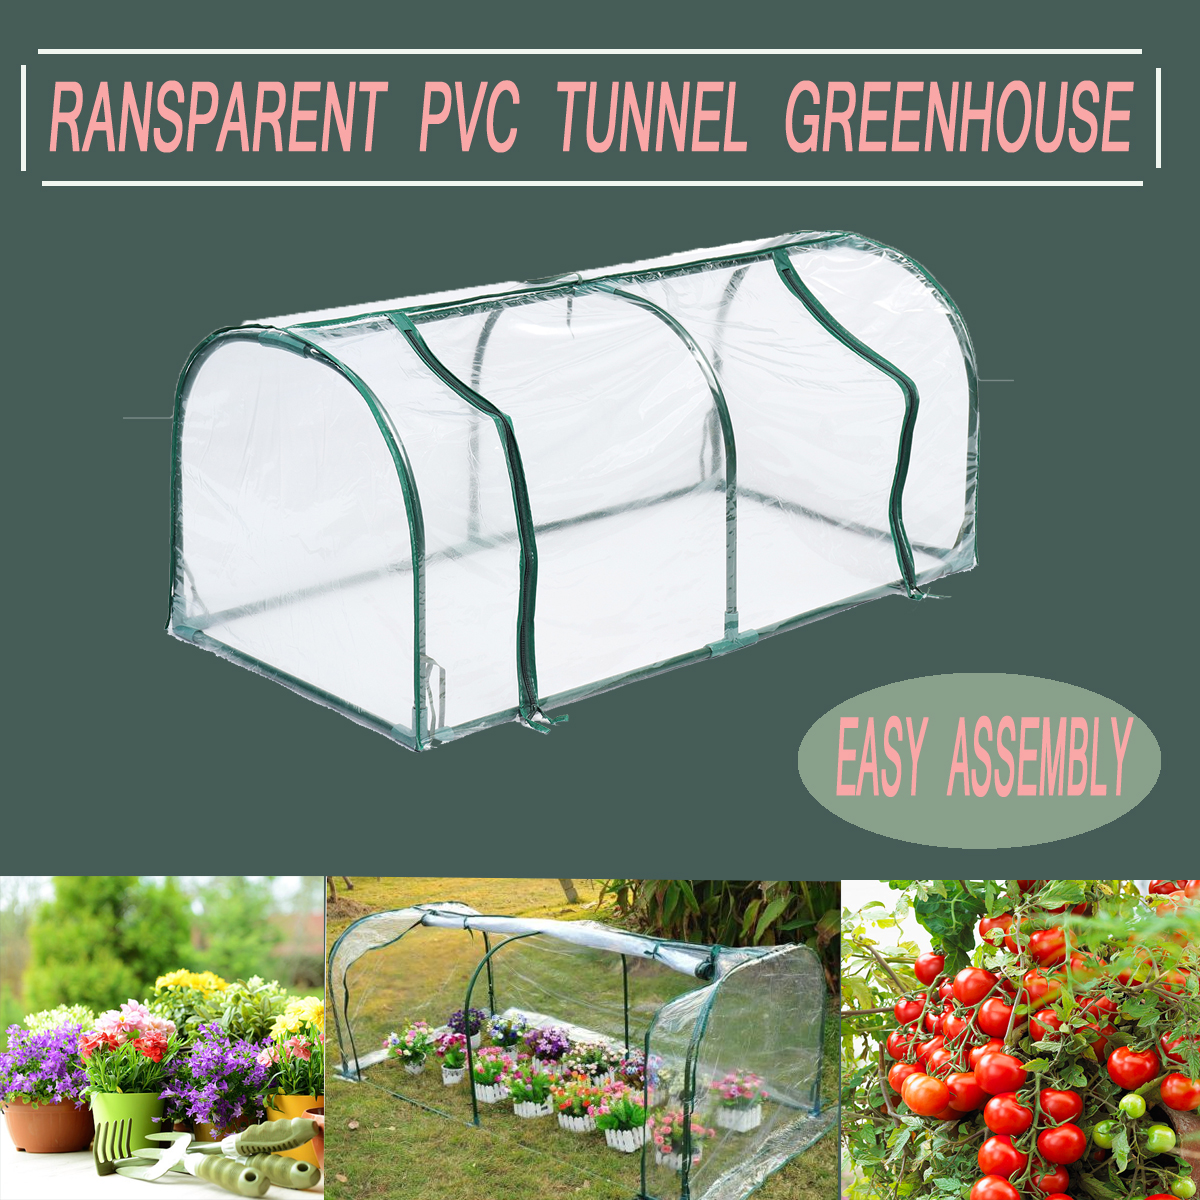 Removable Steel Frame Outdoor Plant Cover Zipper Garden GreenHouse PVC Warm Garden Household Plant Greenhouse Cover 128X60X58CMRemovable Steel Frame Outdoor Plant Cover Zipper Garden GreenHouse PVC Warm Garden Household Plant Greenhouse Cover 128X60X58CM